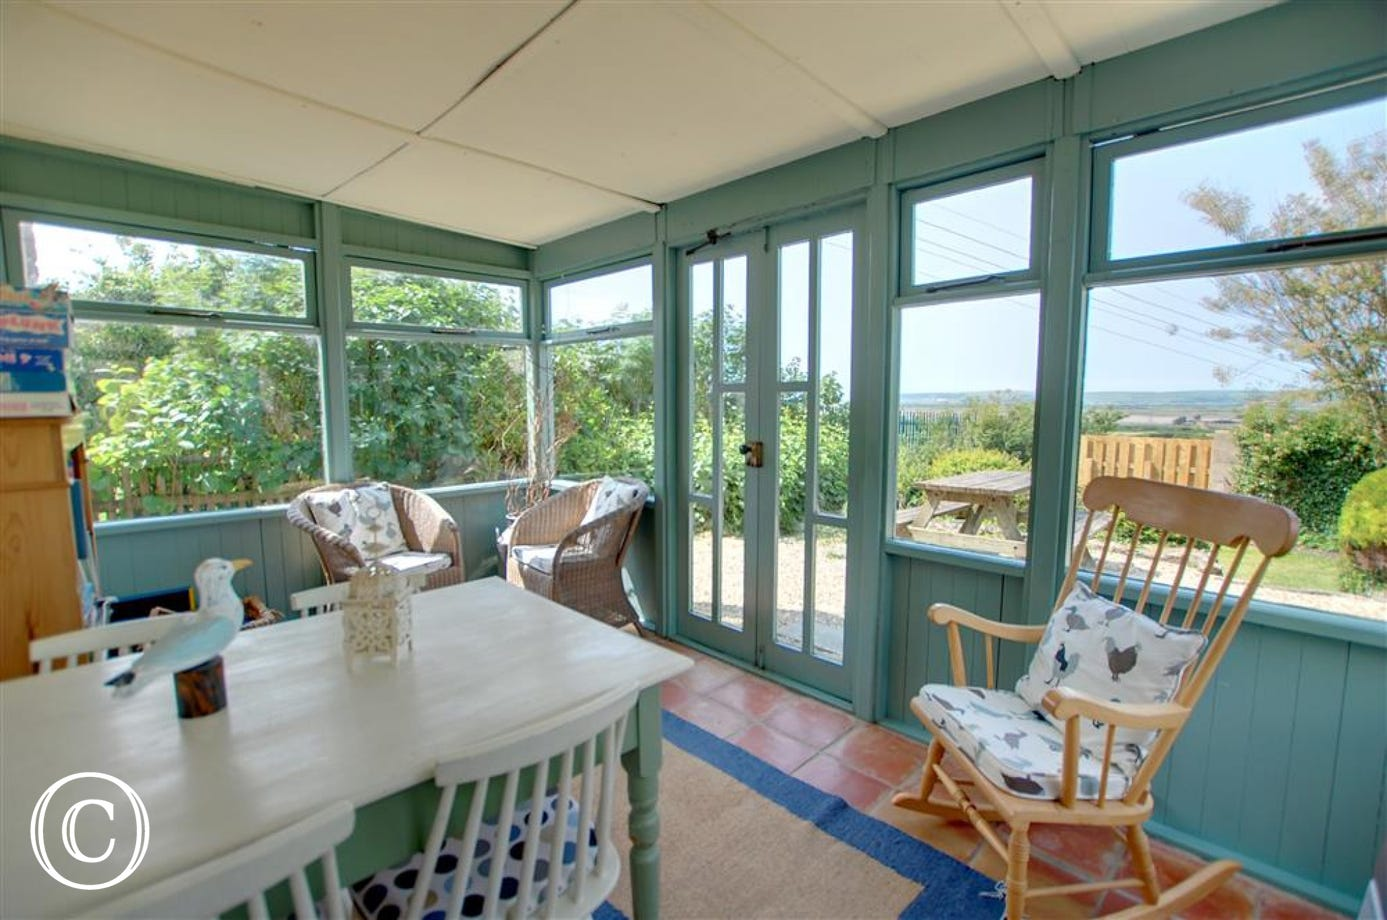 The cottage benefits from a lovely conservatory with doors leading to the patio area